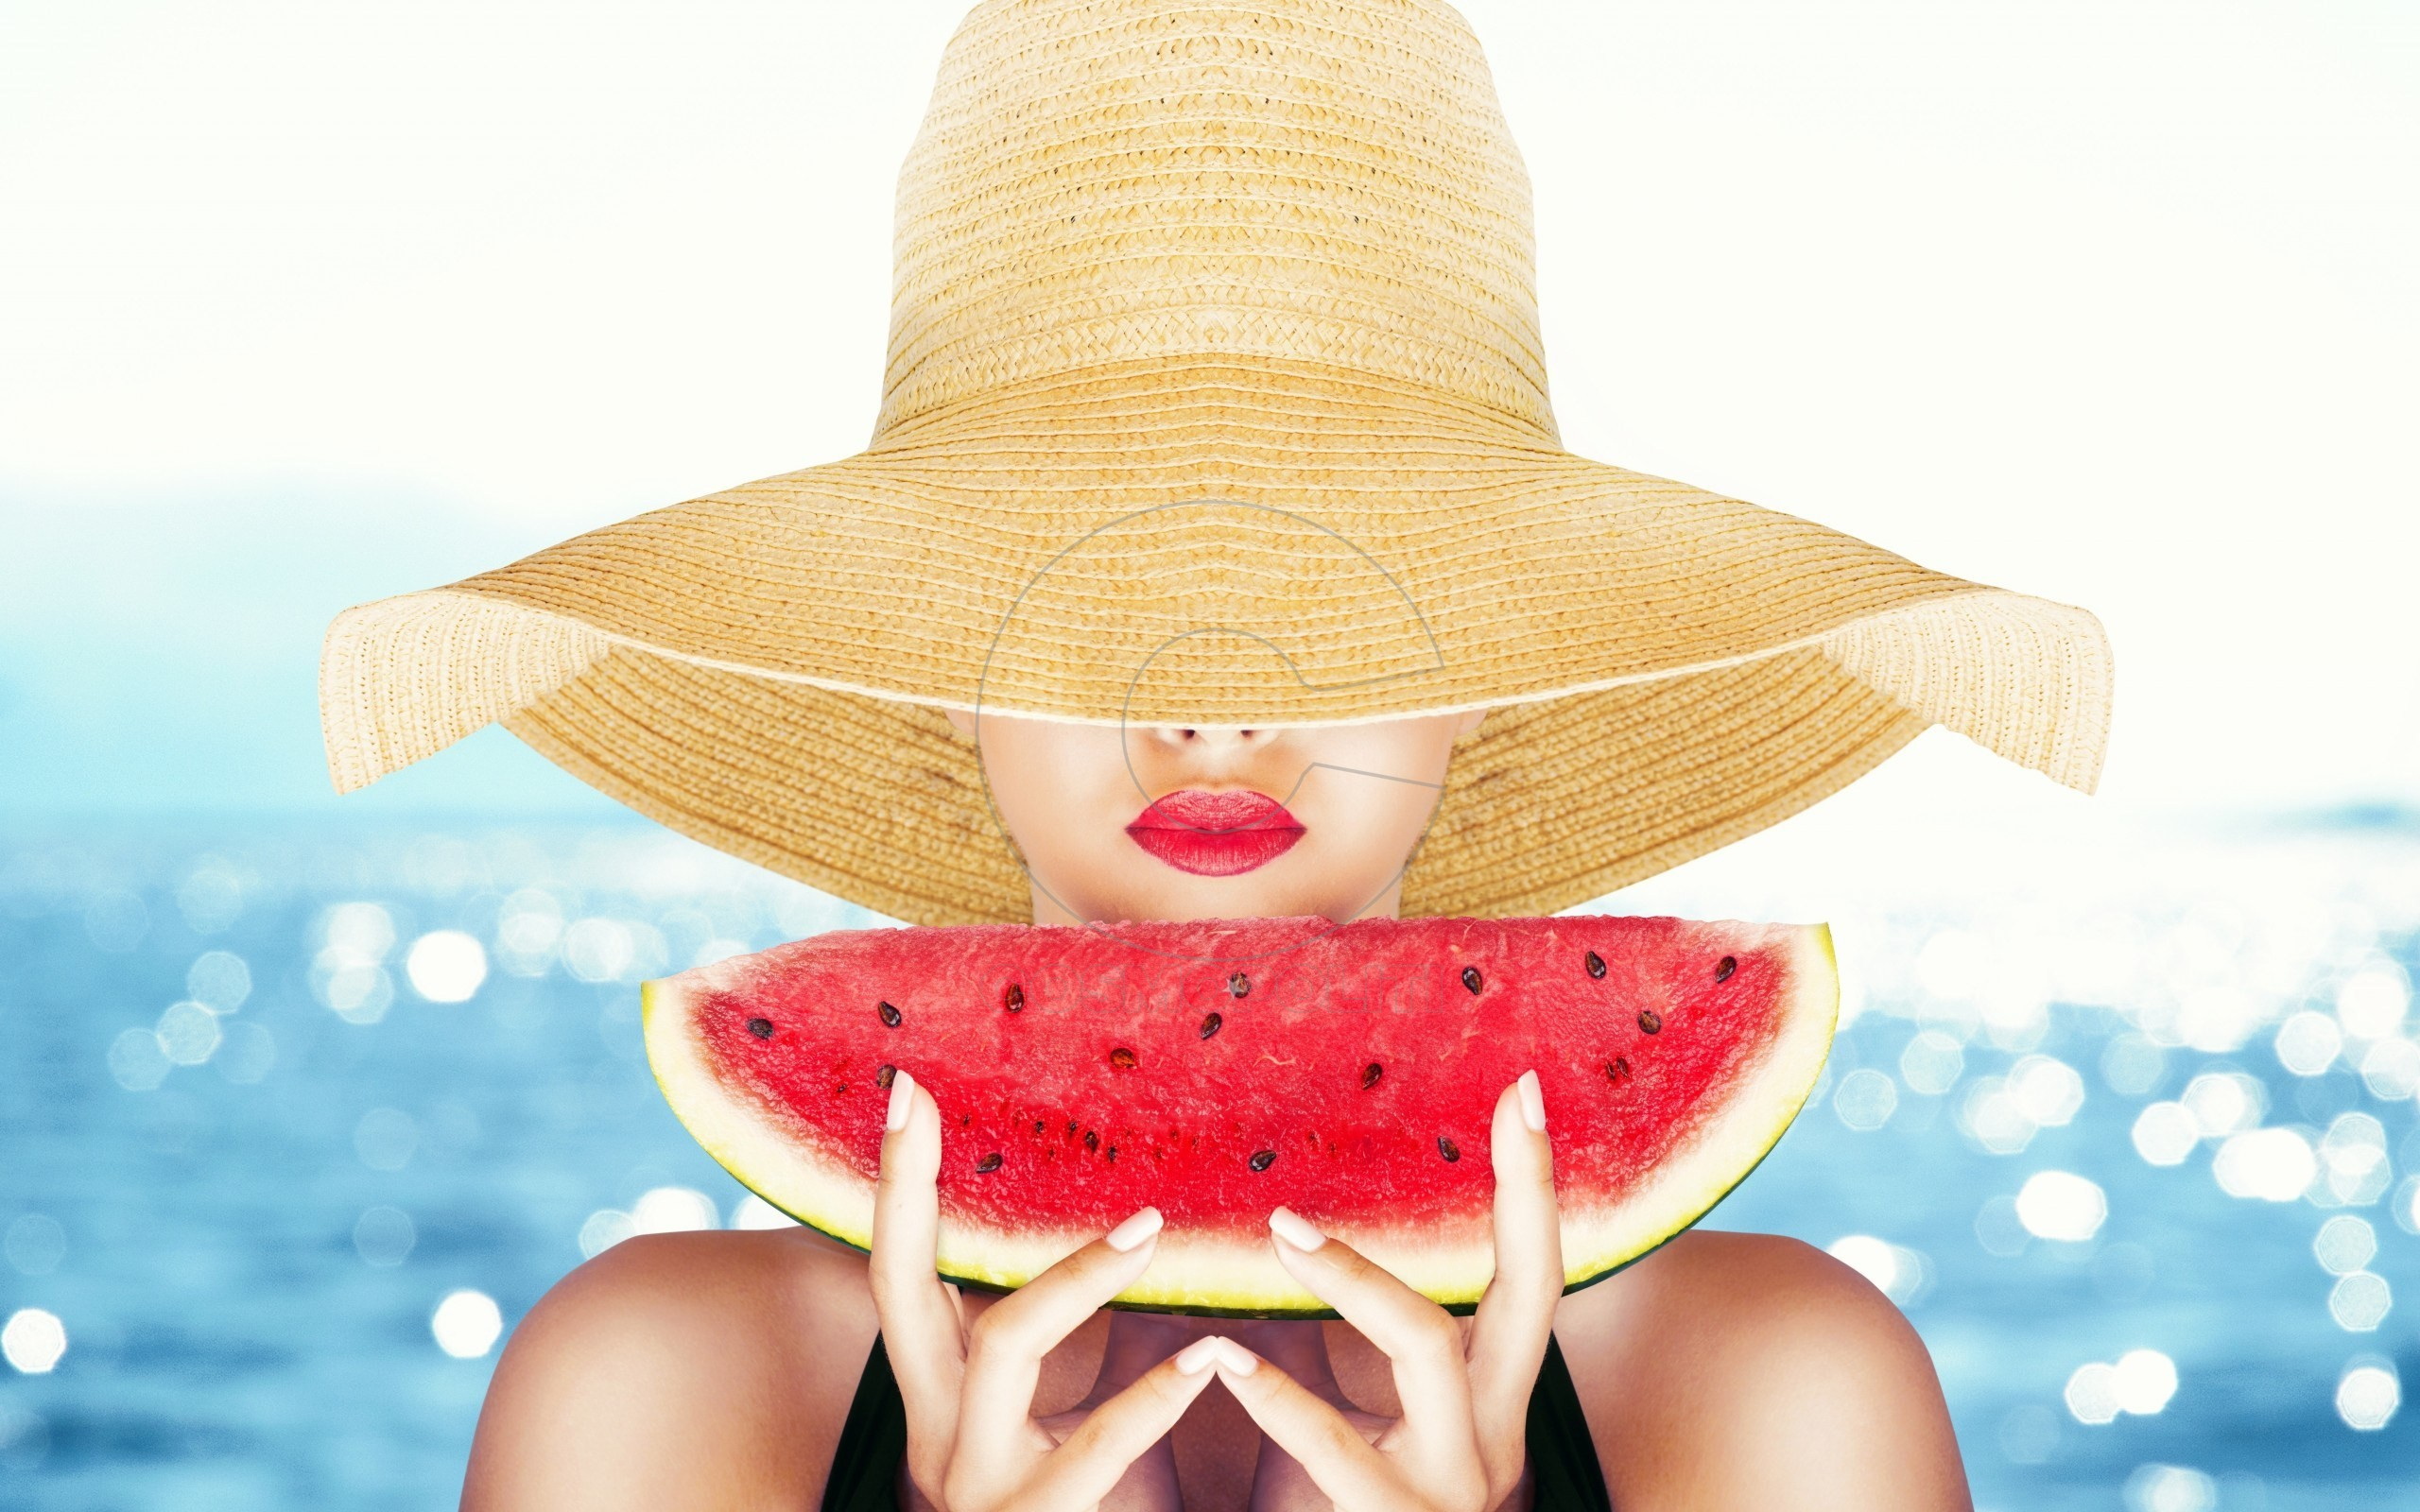 Beautiful-Girl-Slice-Of-Watermelon-Wide-HD-Wallpaper